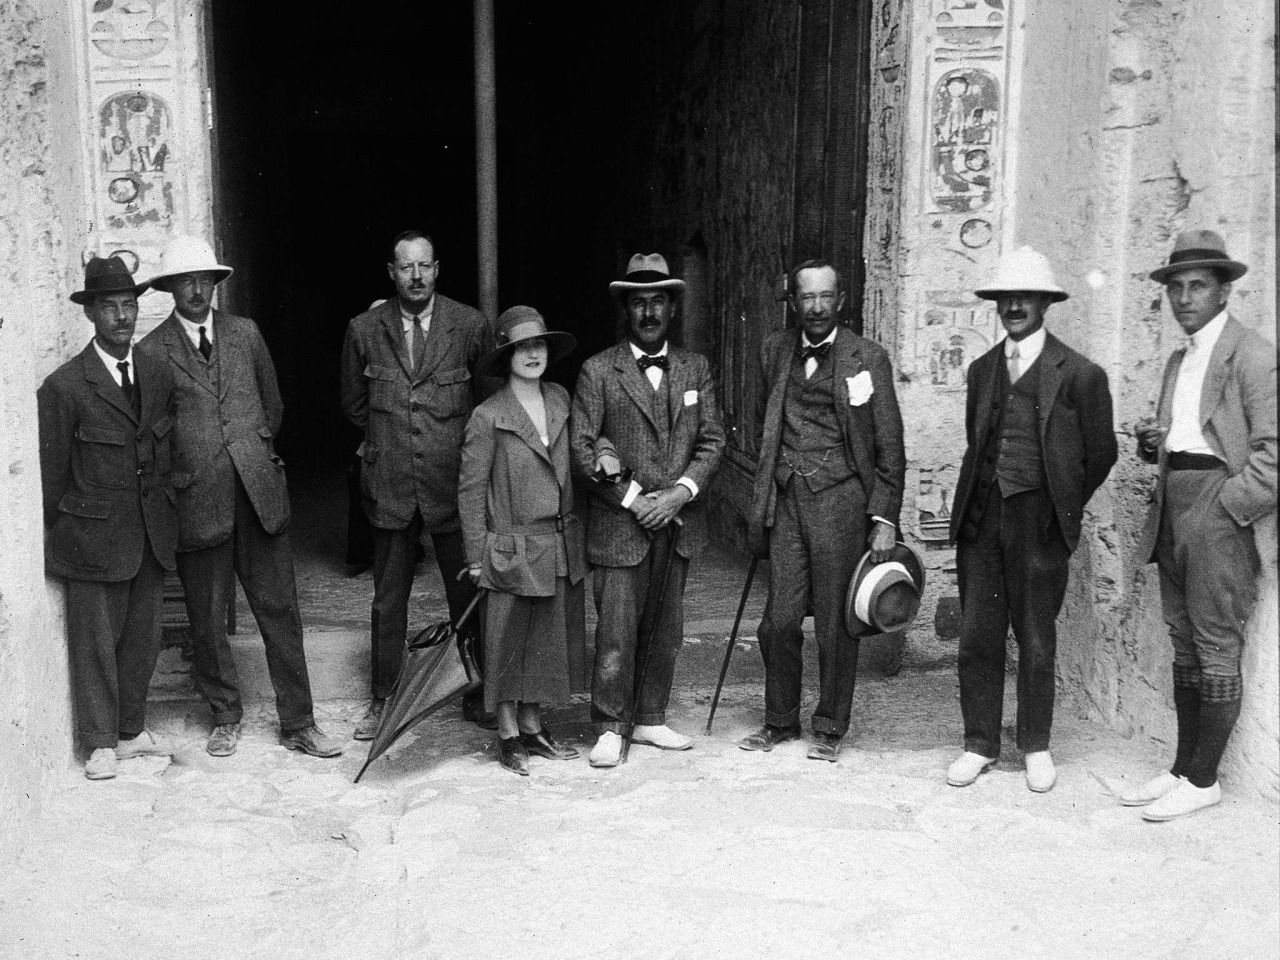 howard carter and the tomb of king tut The house that king tut bought and now it's up for a pharaoh price tag lavish five-bedroom apartment in block where archaeologist howard carter lived after discovery of tutankhamun's tomb goes on sale for £975million.